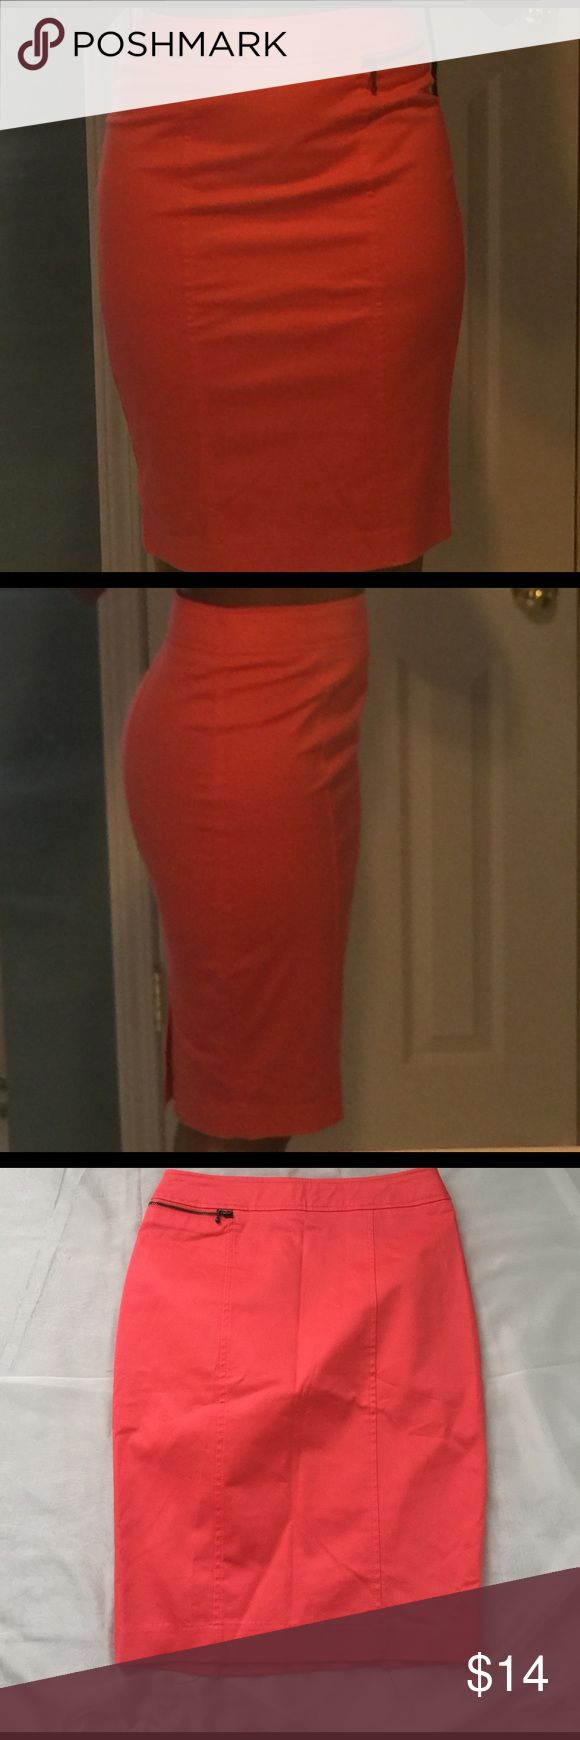 Beautiful coral Pencil skirt Coral Pencil skirt with two splits in the back hidden upper zipper and side front zipper pocket. Fits like a glove. Beautiful spring coral color. Hits me at the knee I'm 5'5. 22.5 inches long messimo Skirts Pencil